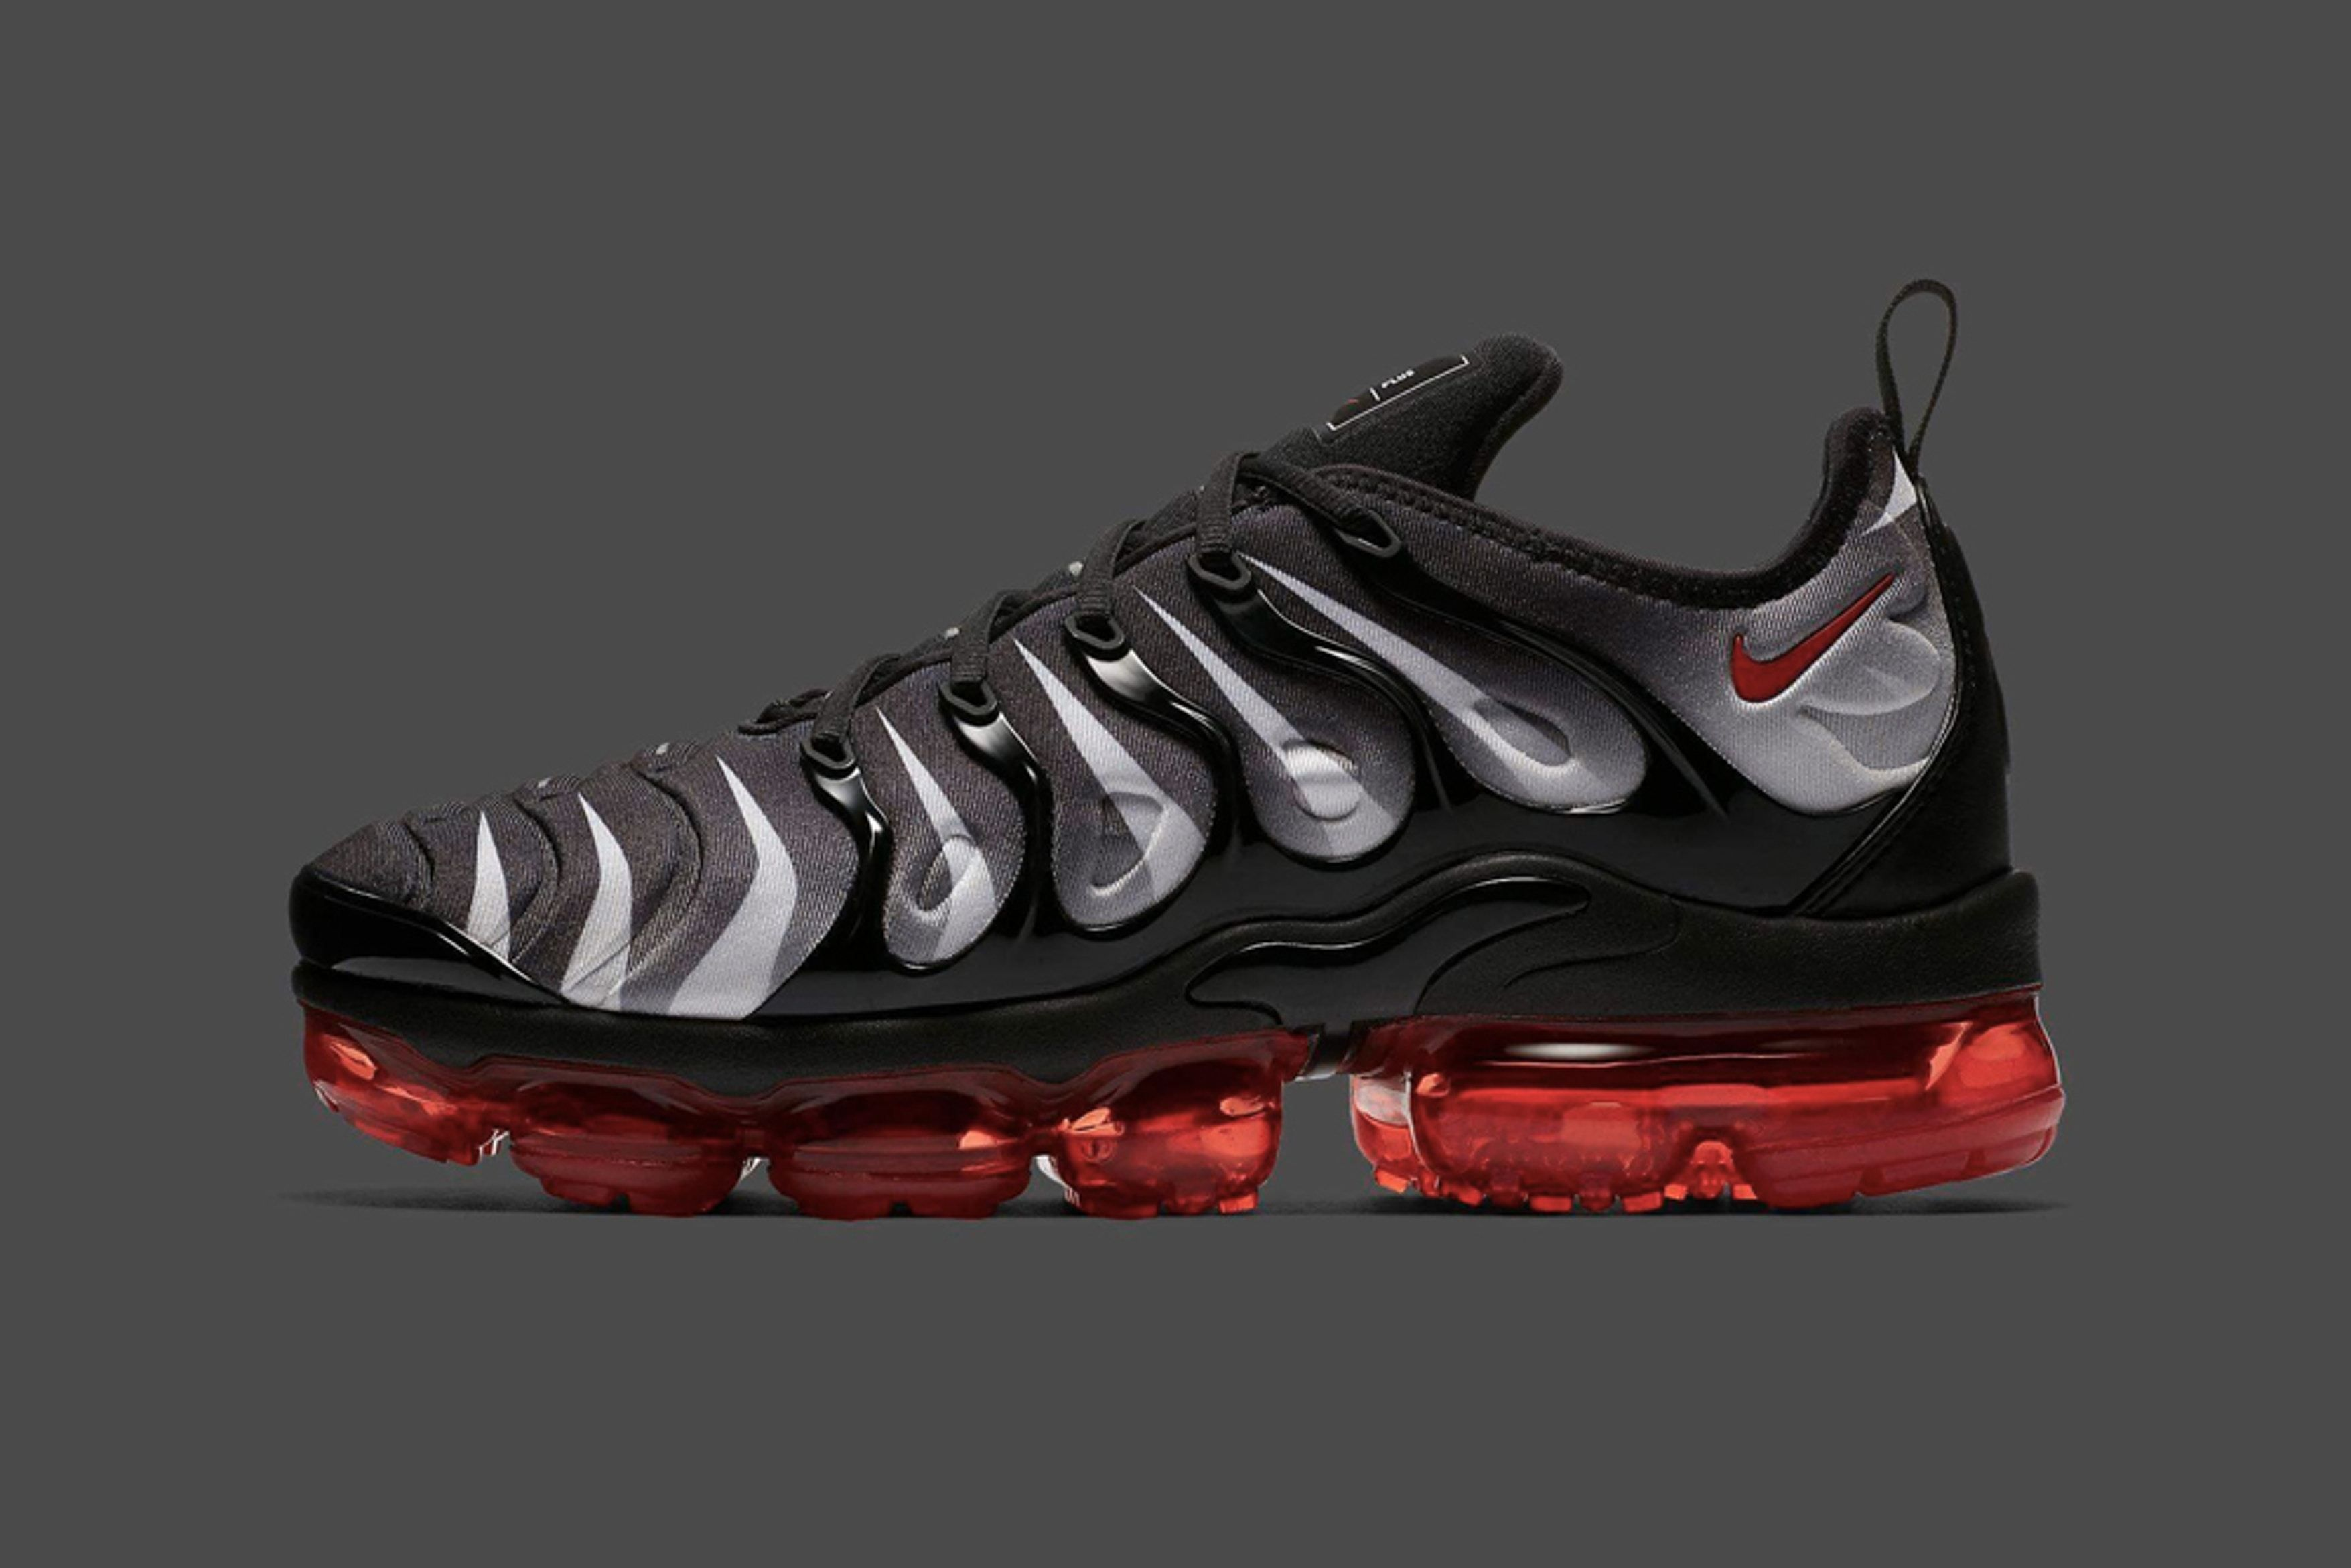 2018 Nike Air Vapormax Plus Mens Sneakers Red Shark Tooth